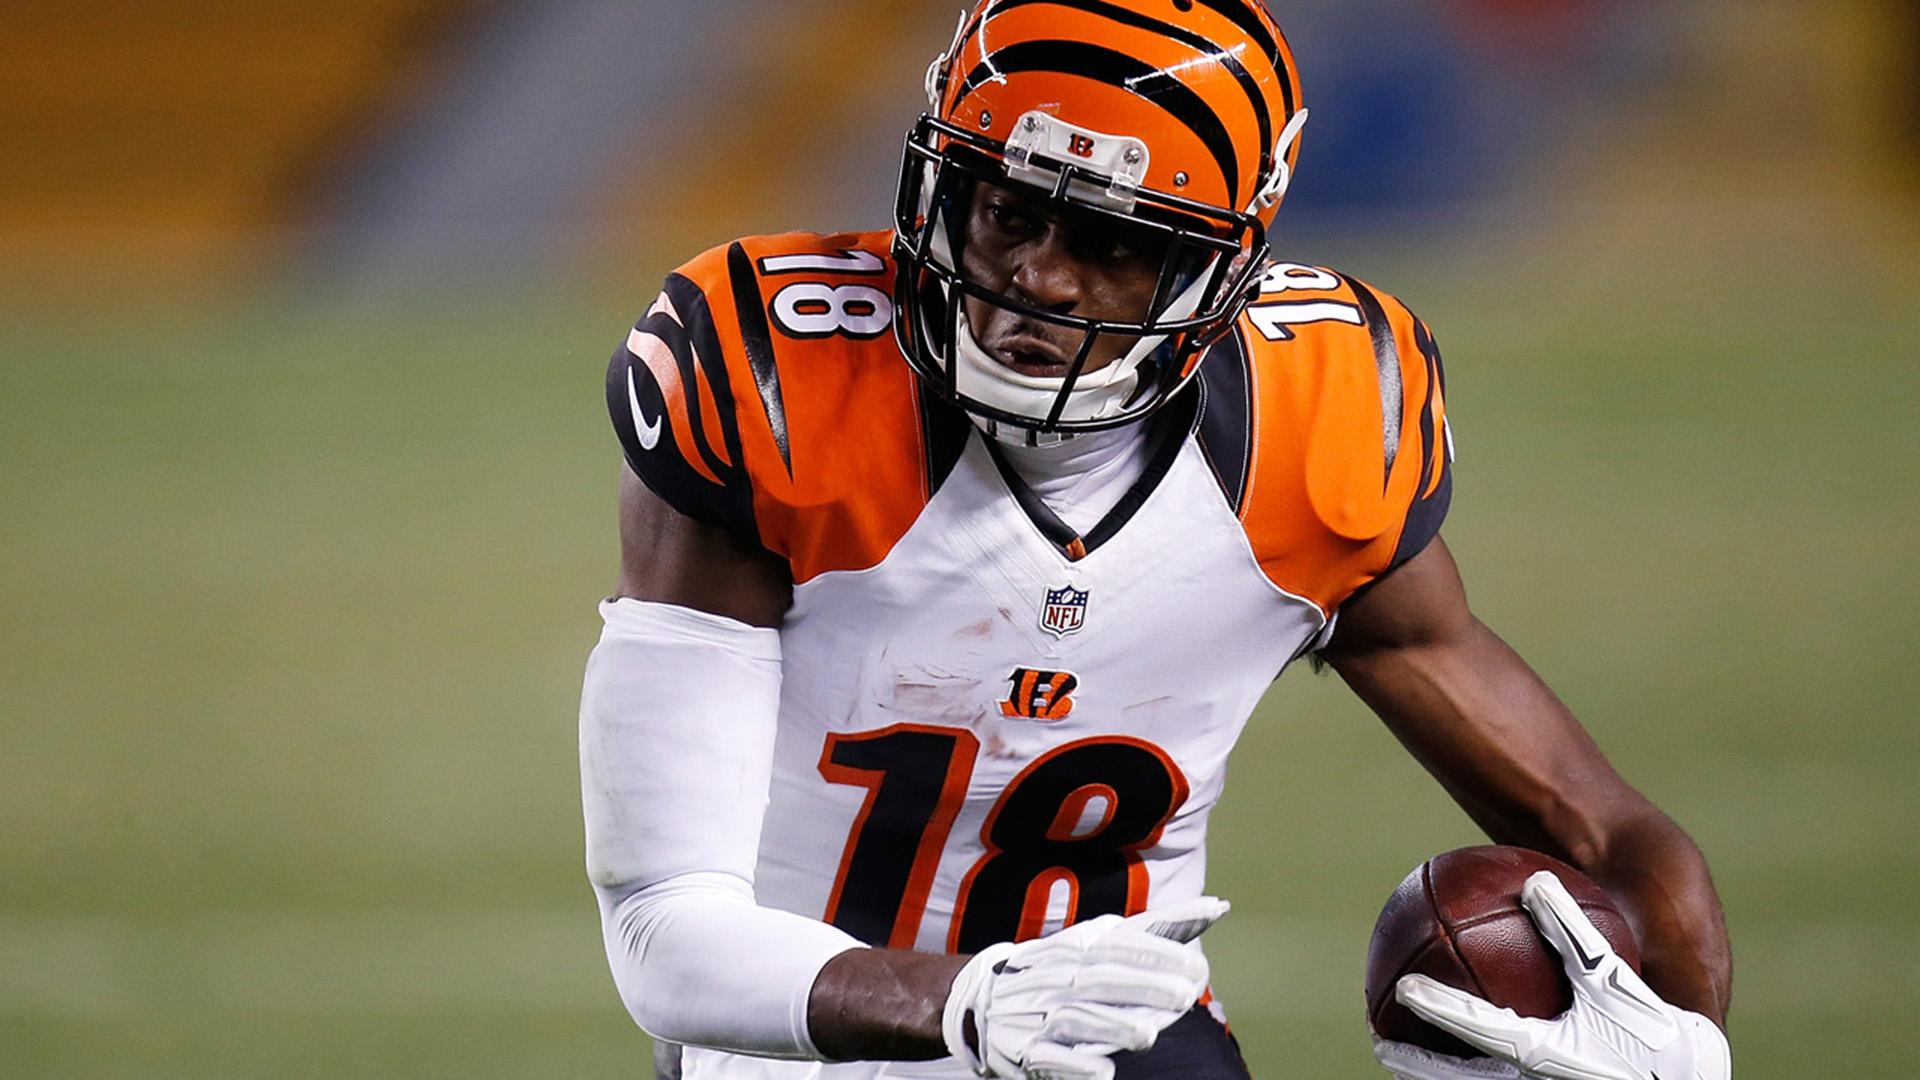 Picking receivers for your fantasy lineup in Week 10